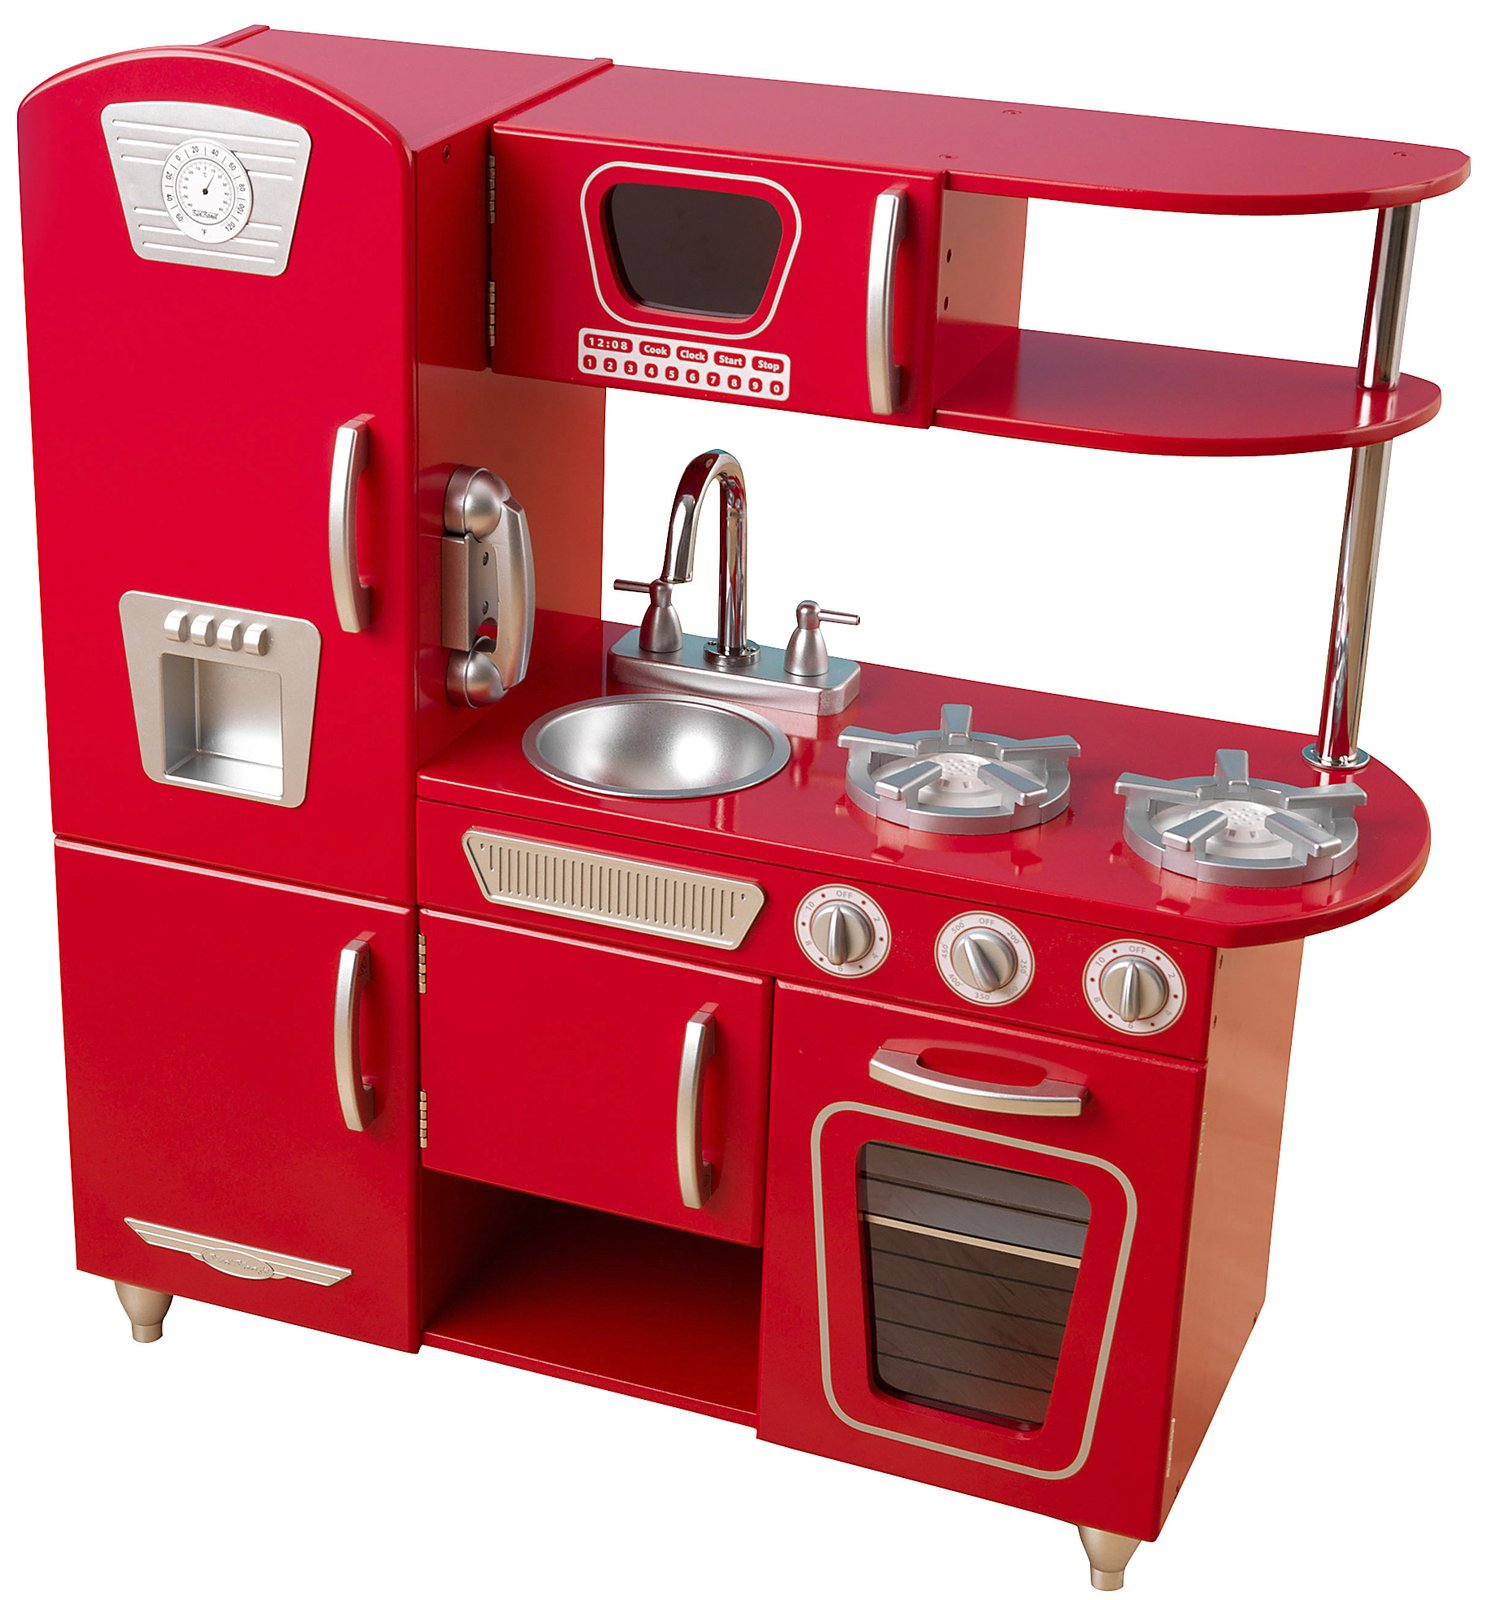 Toy Kitchens  Will & I. Cottage Living Room. Modular Living Room Furniture Systems. Small Living Room And Dining Room. Living Room Design With Leather Sofa. Ideas For Living Rooms With Fireplaces. The Living Room Schaumburg. Gold And Black Living Room Ideas. Pit Group Living Room Furniture